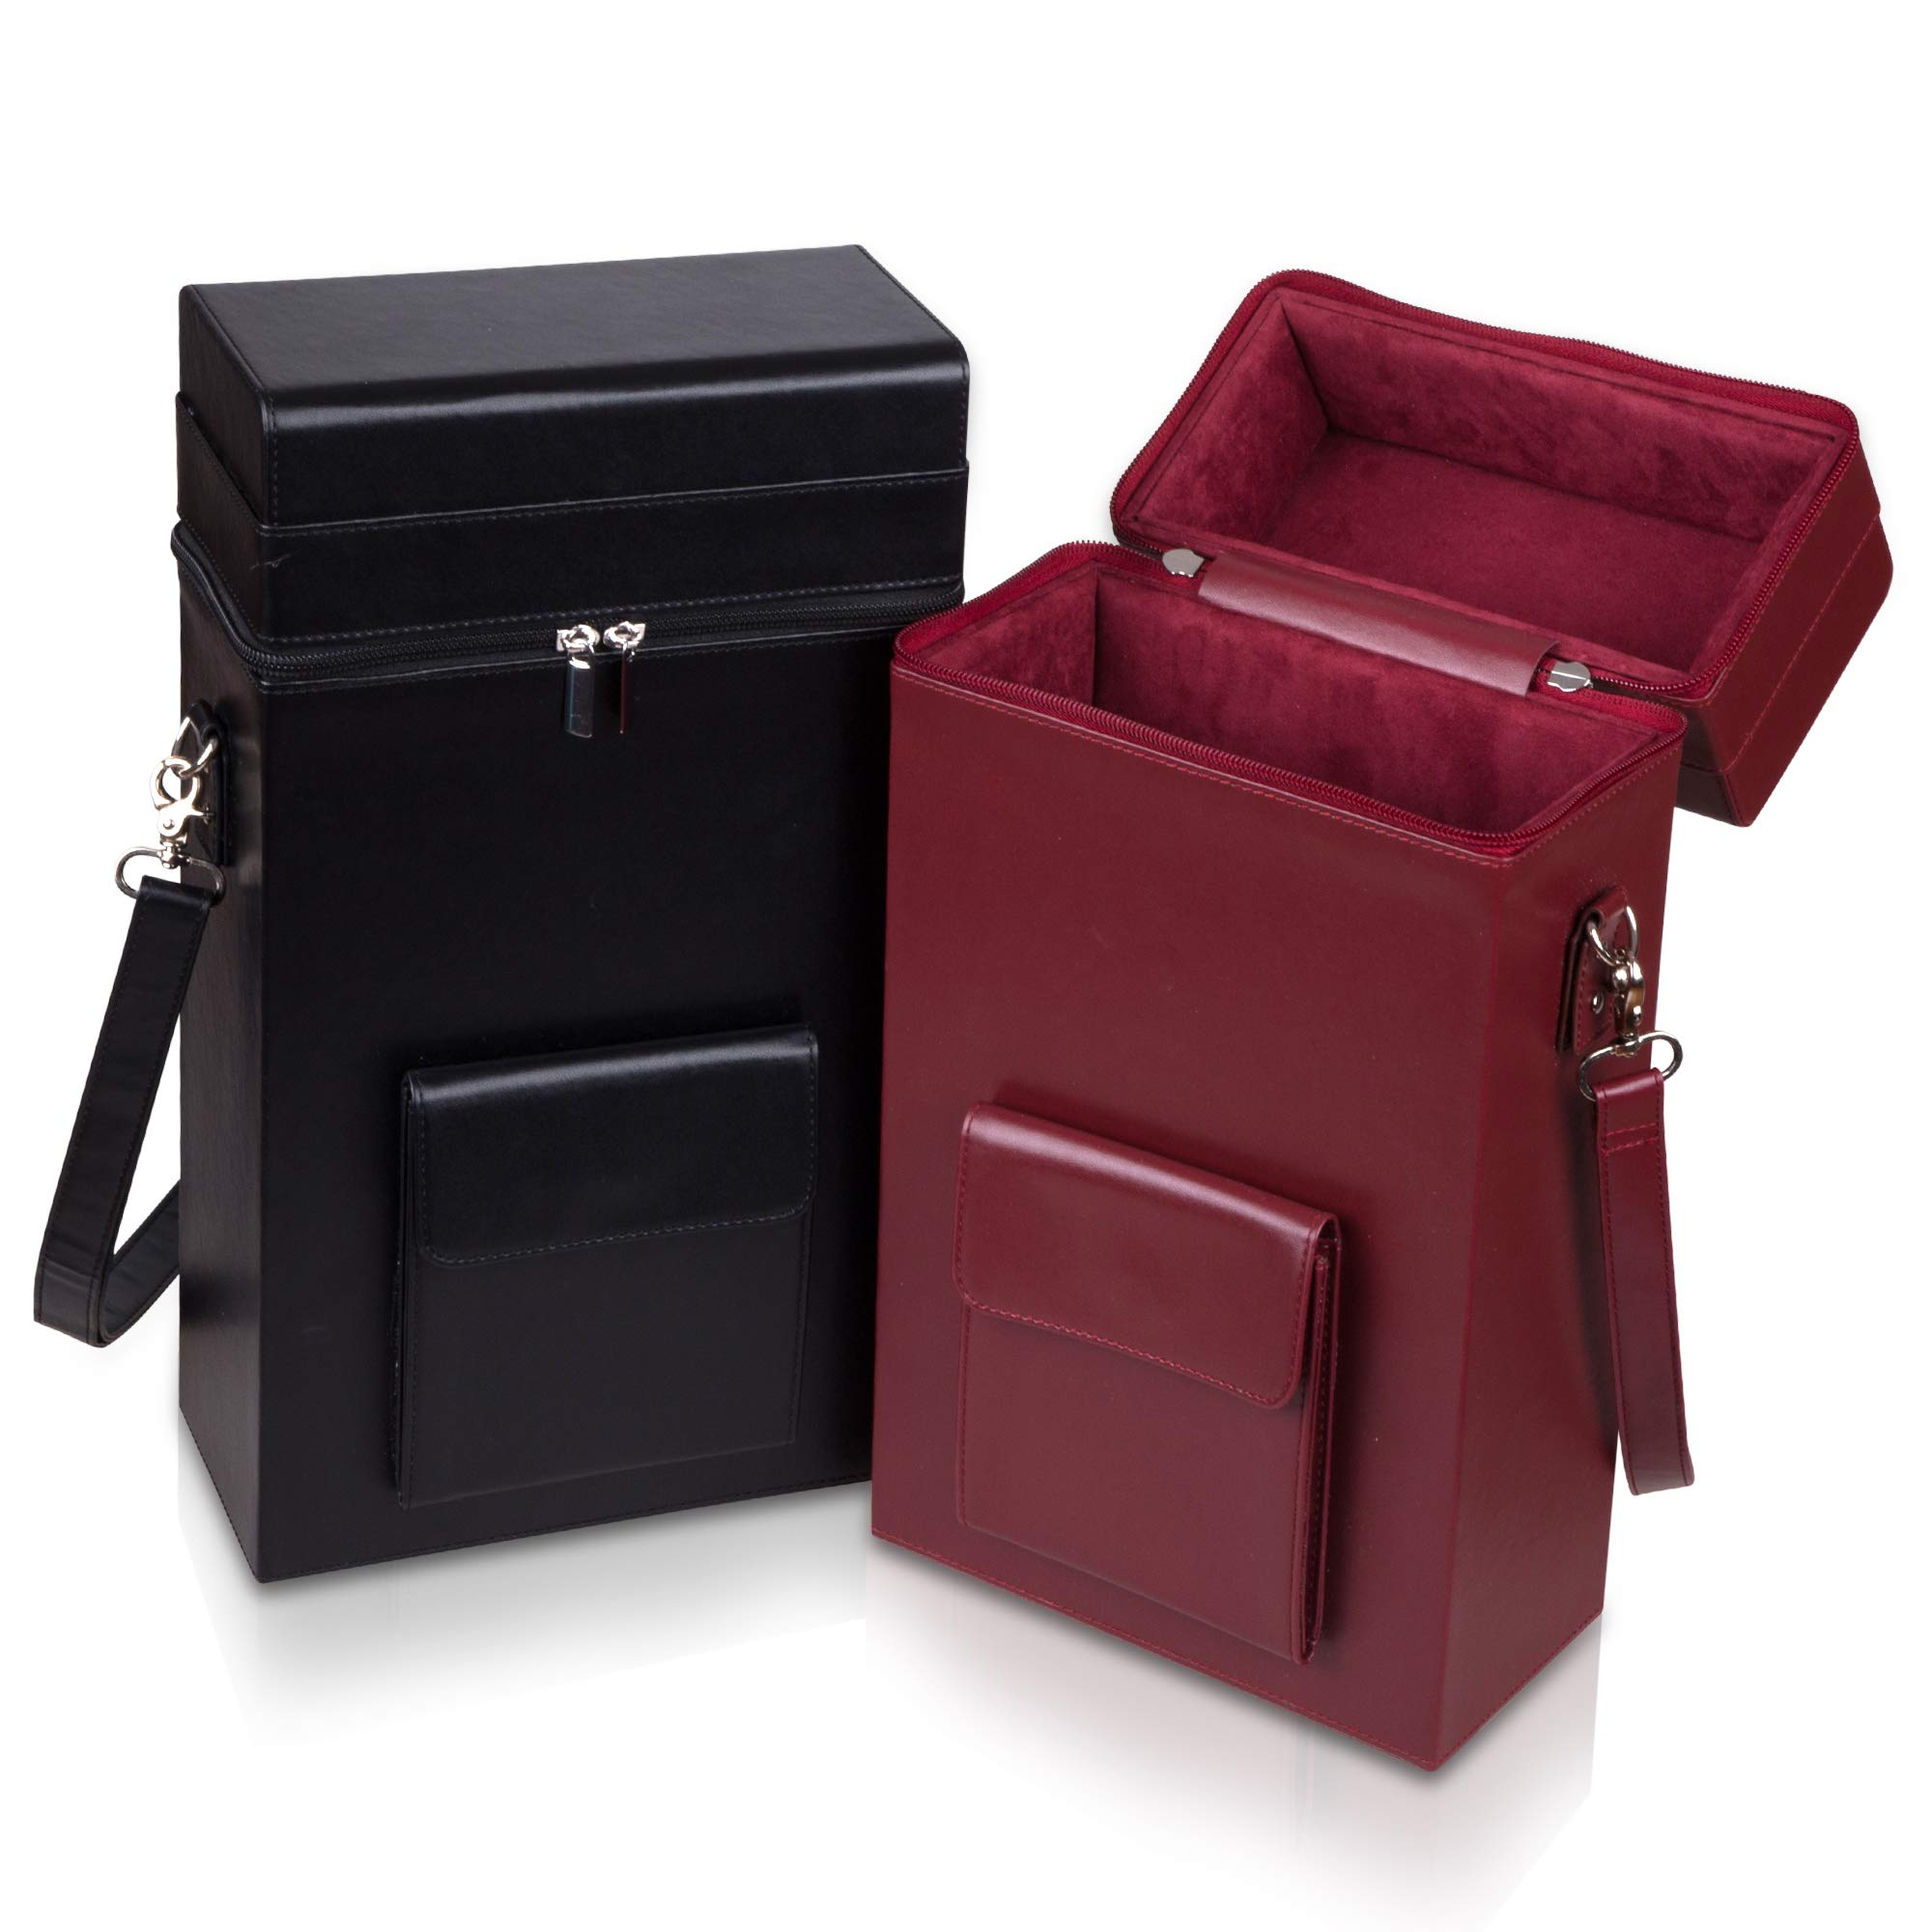 Premium Leather Wine Tote Bag: Padded Double Bottle Wine Carrier Caddy - Wine Bags for Travel (Black)